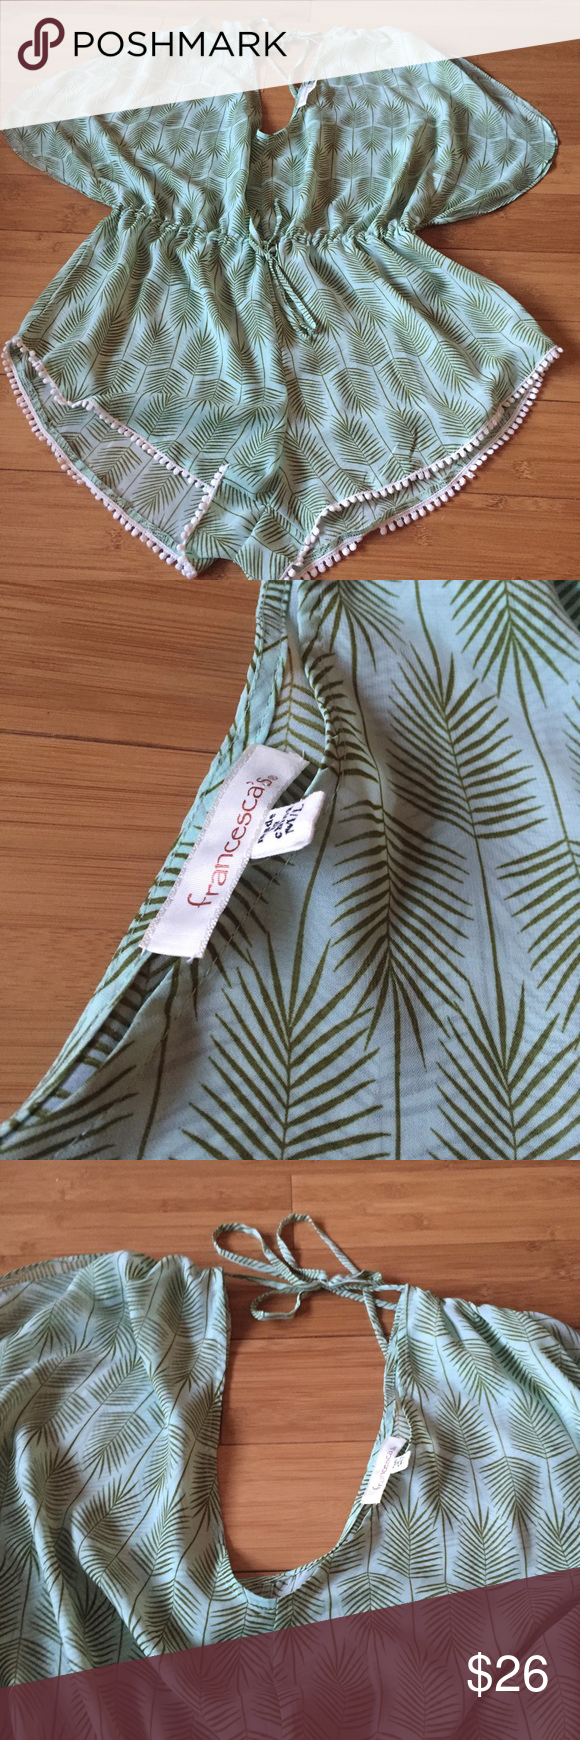 44fac9b14a Francesca s swim cover up green palm leaves M   L Gorgeous romper swim  cover up from Francesca s. it s labeled a M L and the waist is adjustable.